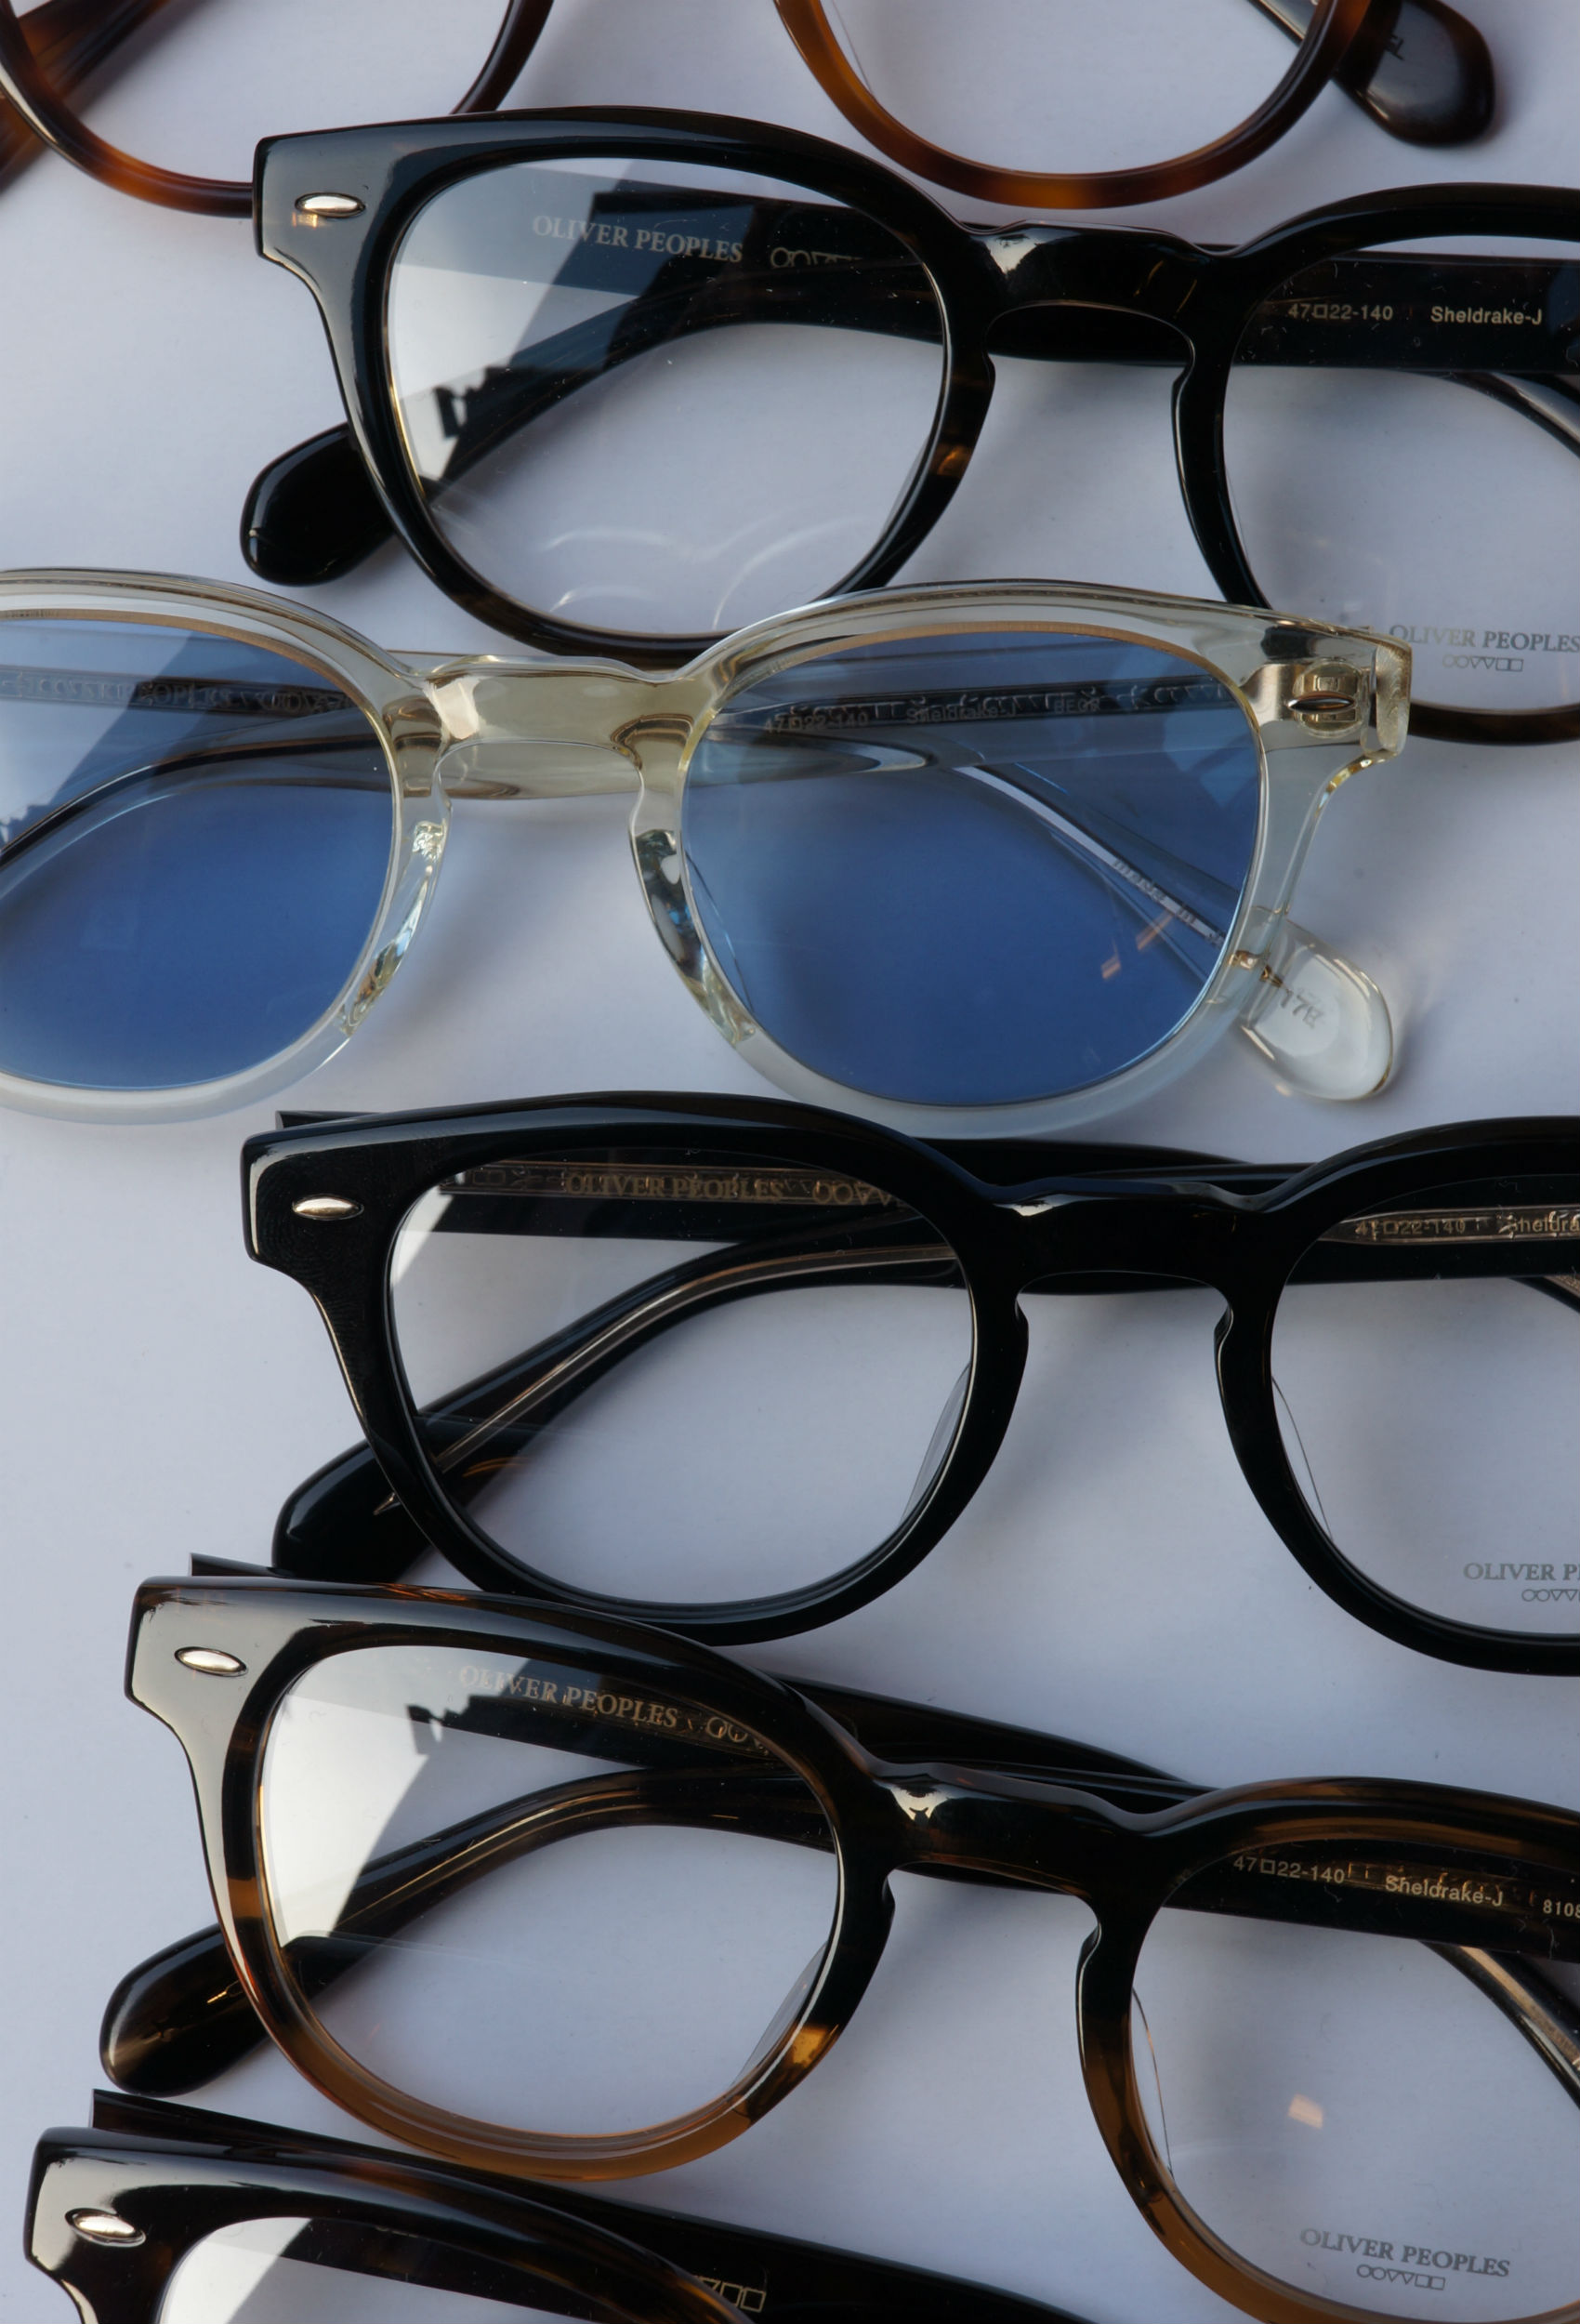 OLIVER PEOPLES Sheldrake-J BECR